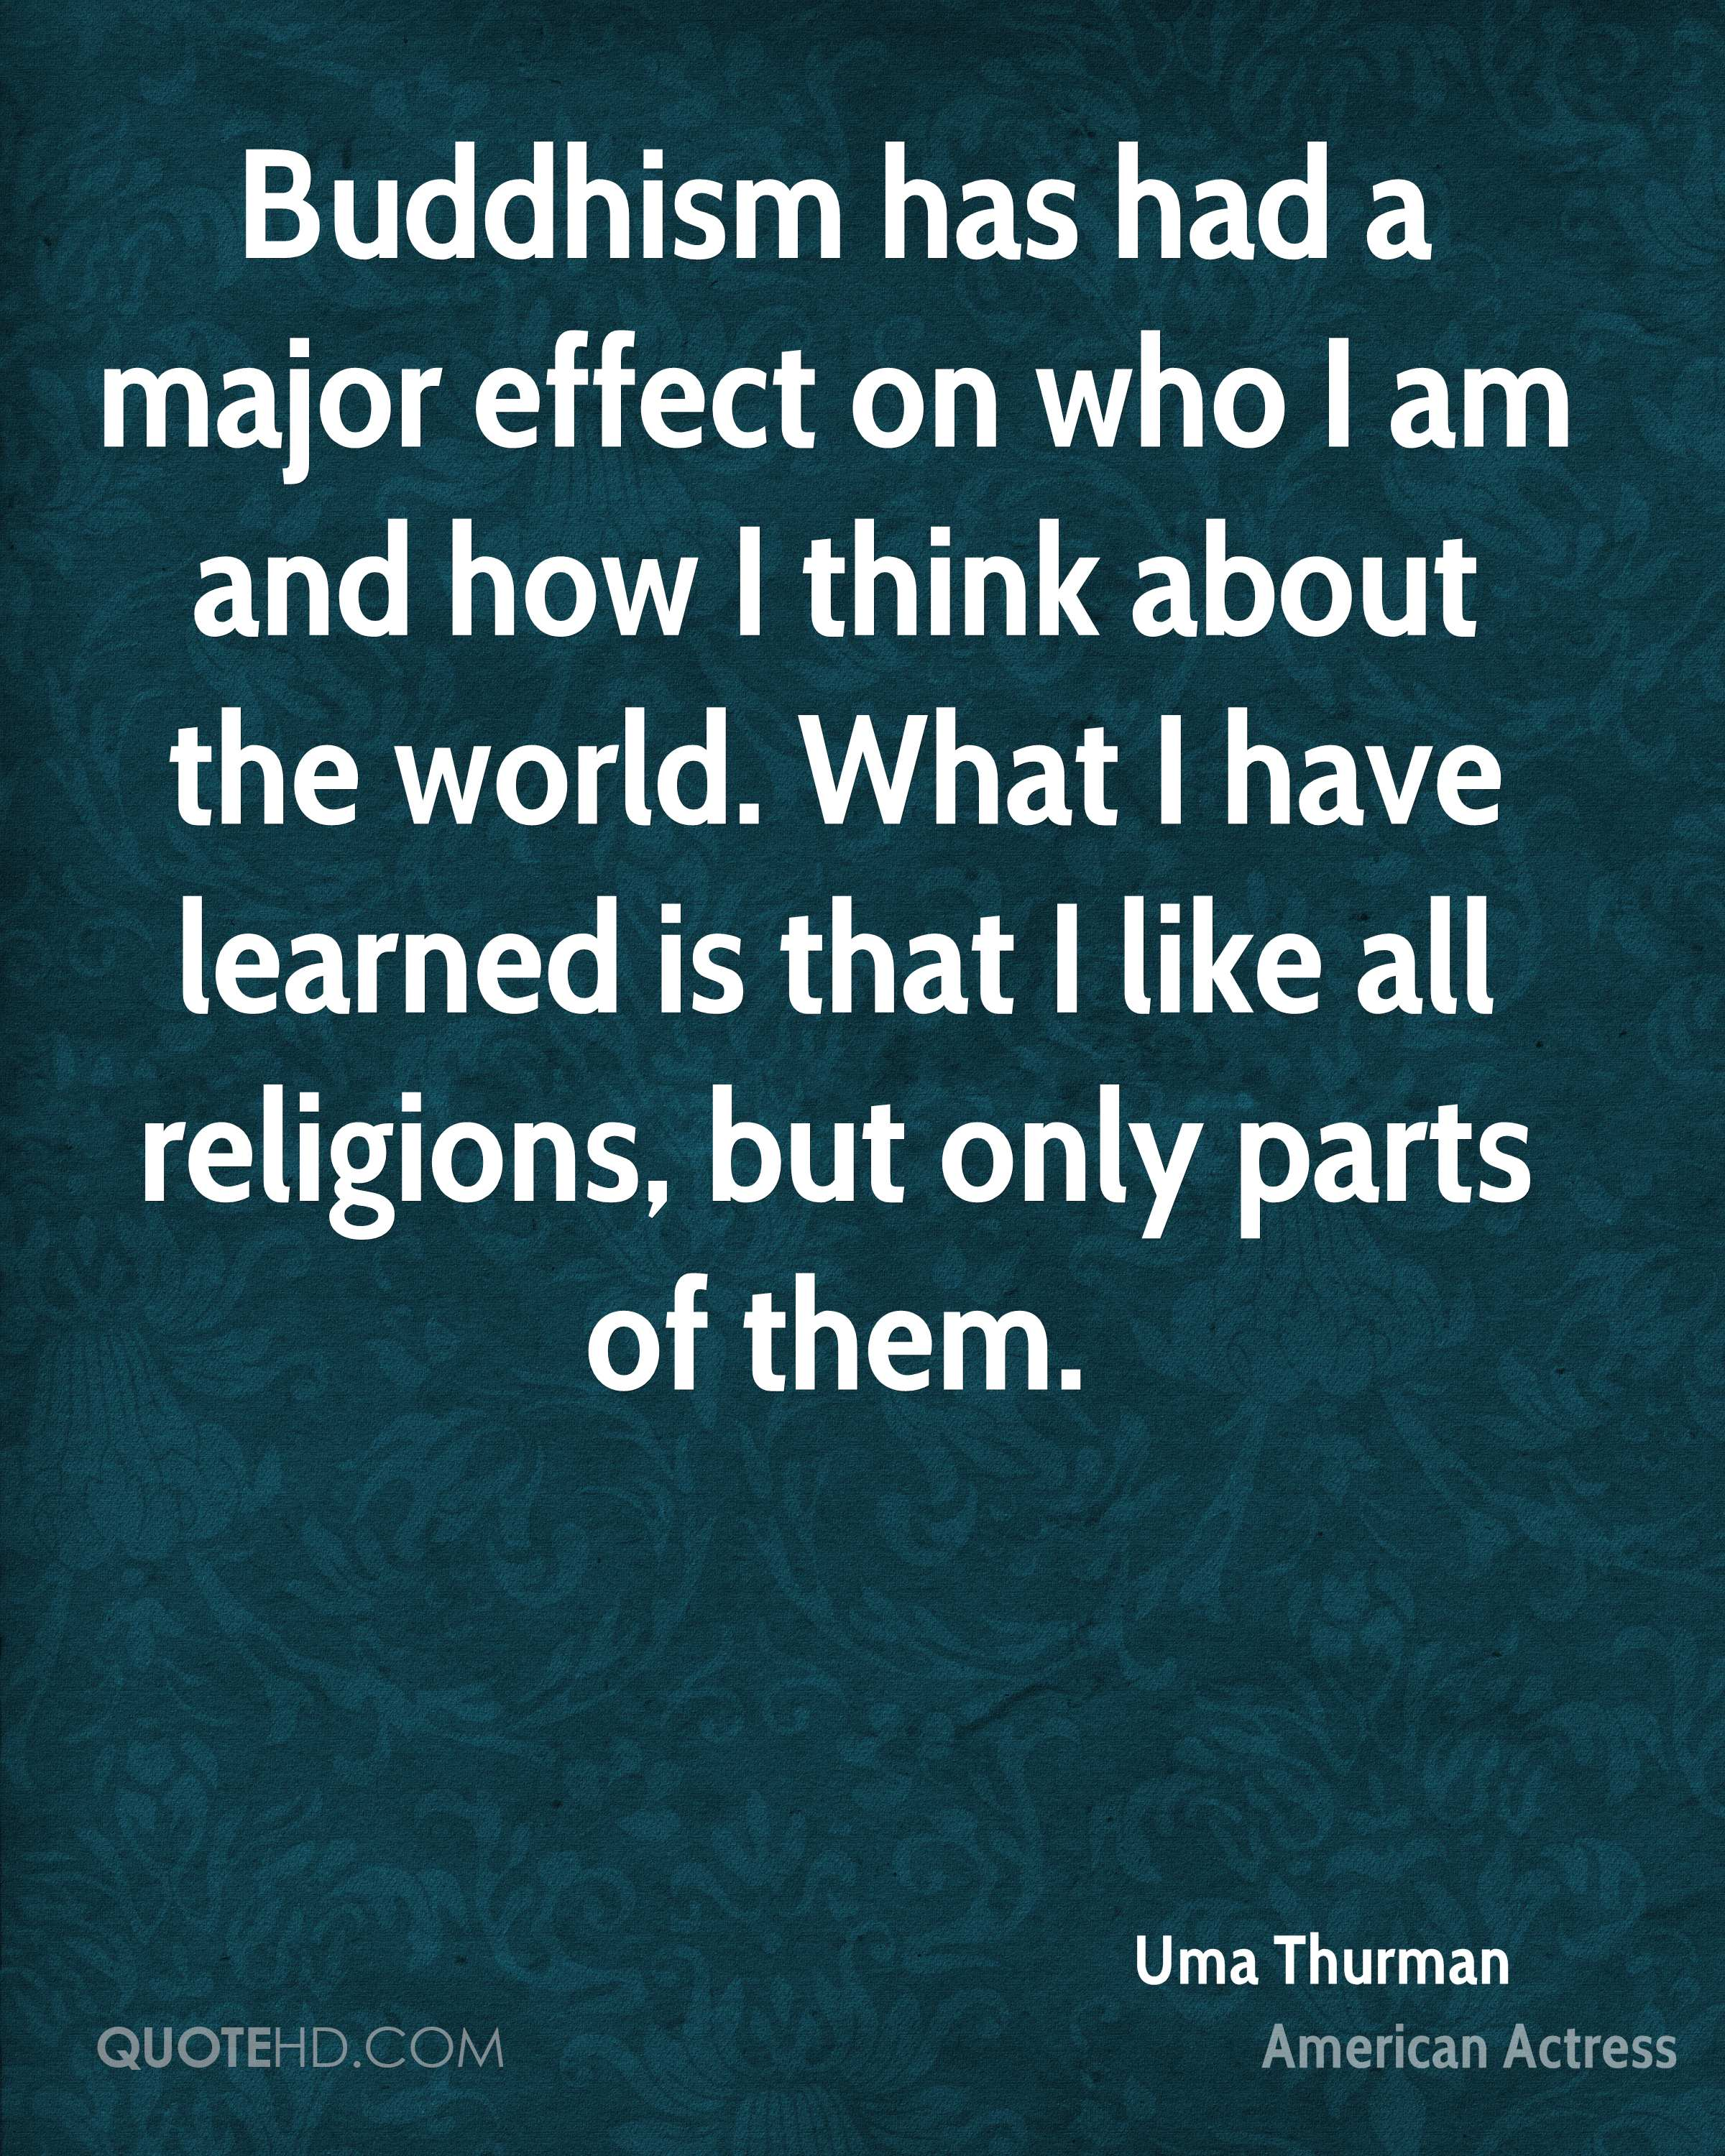 Buddhism has had a major effect on who I am and how I think about the world. What I have learned is that I like all religions, but only parts of them.